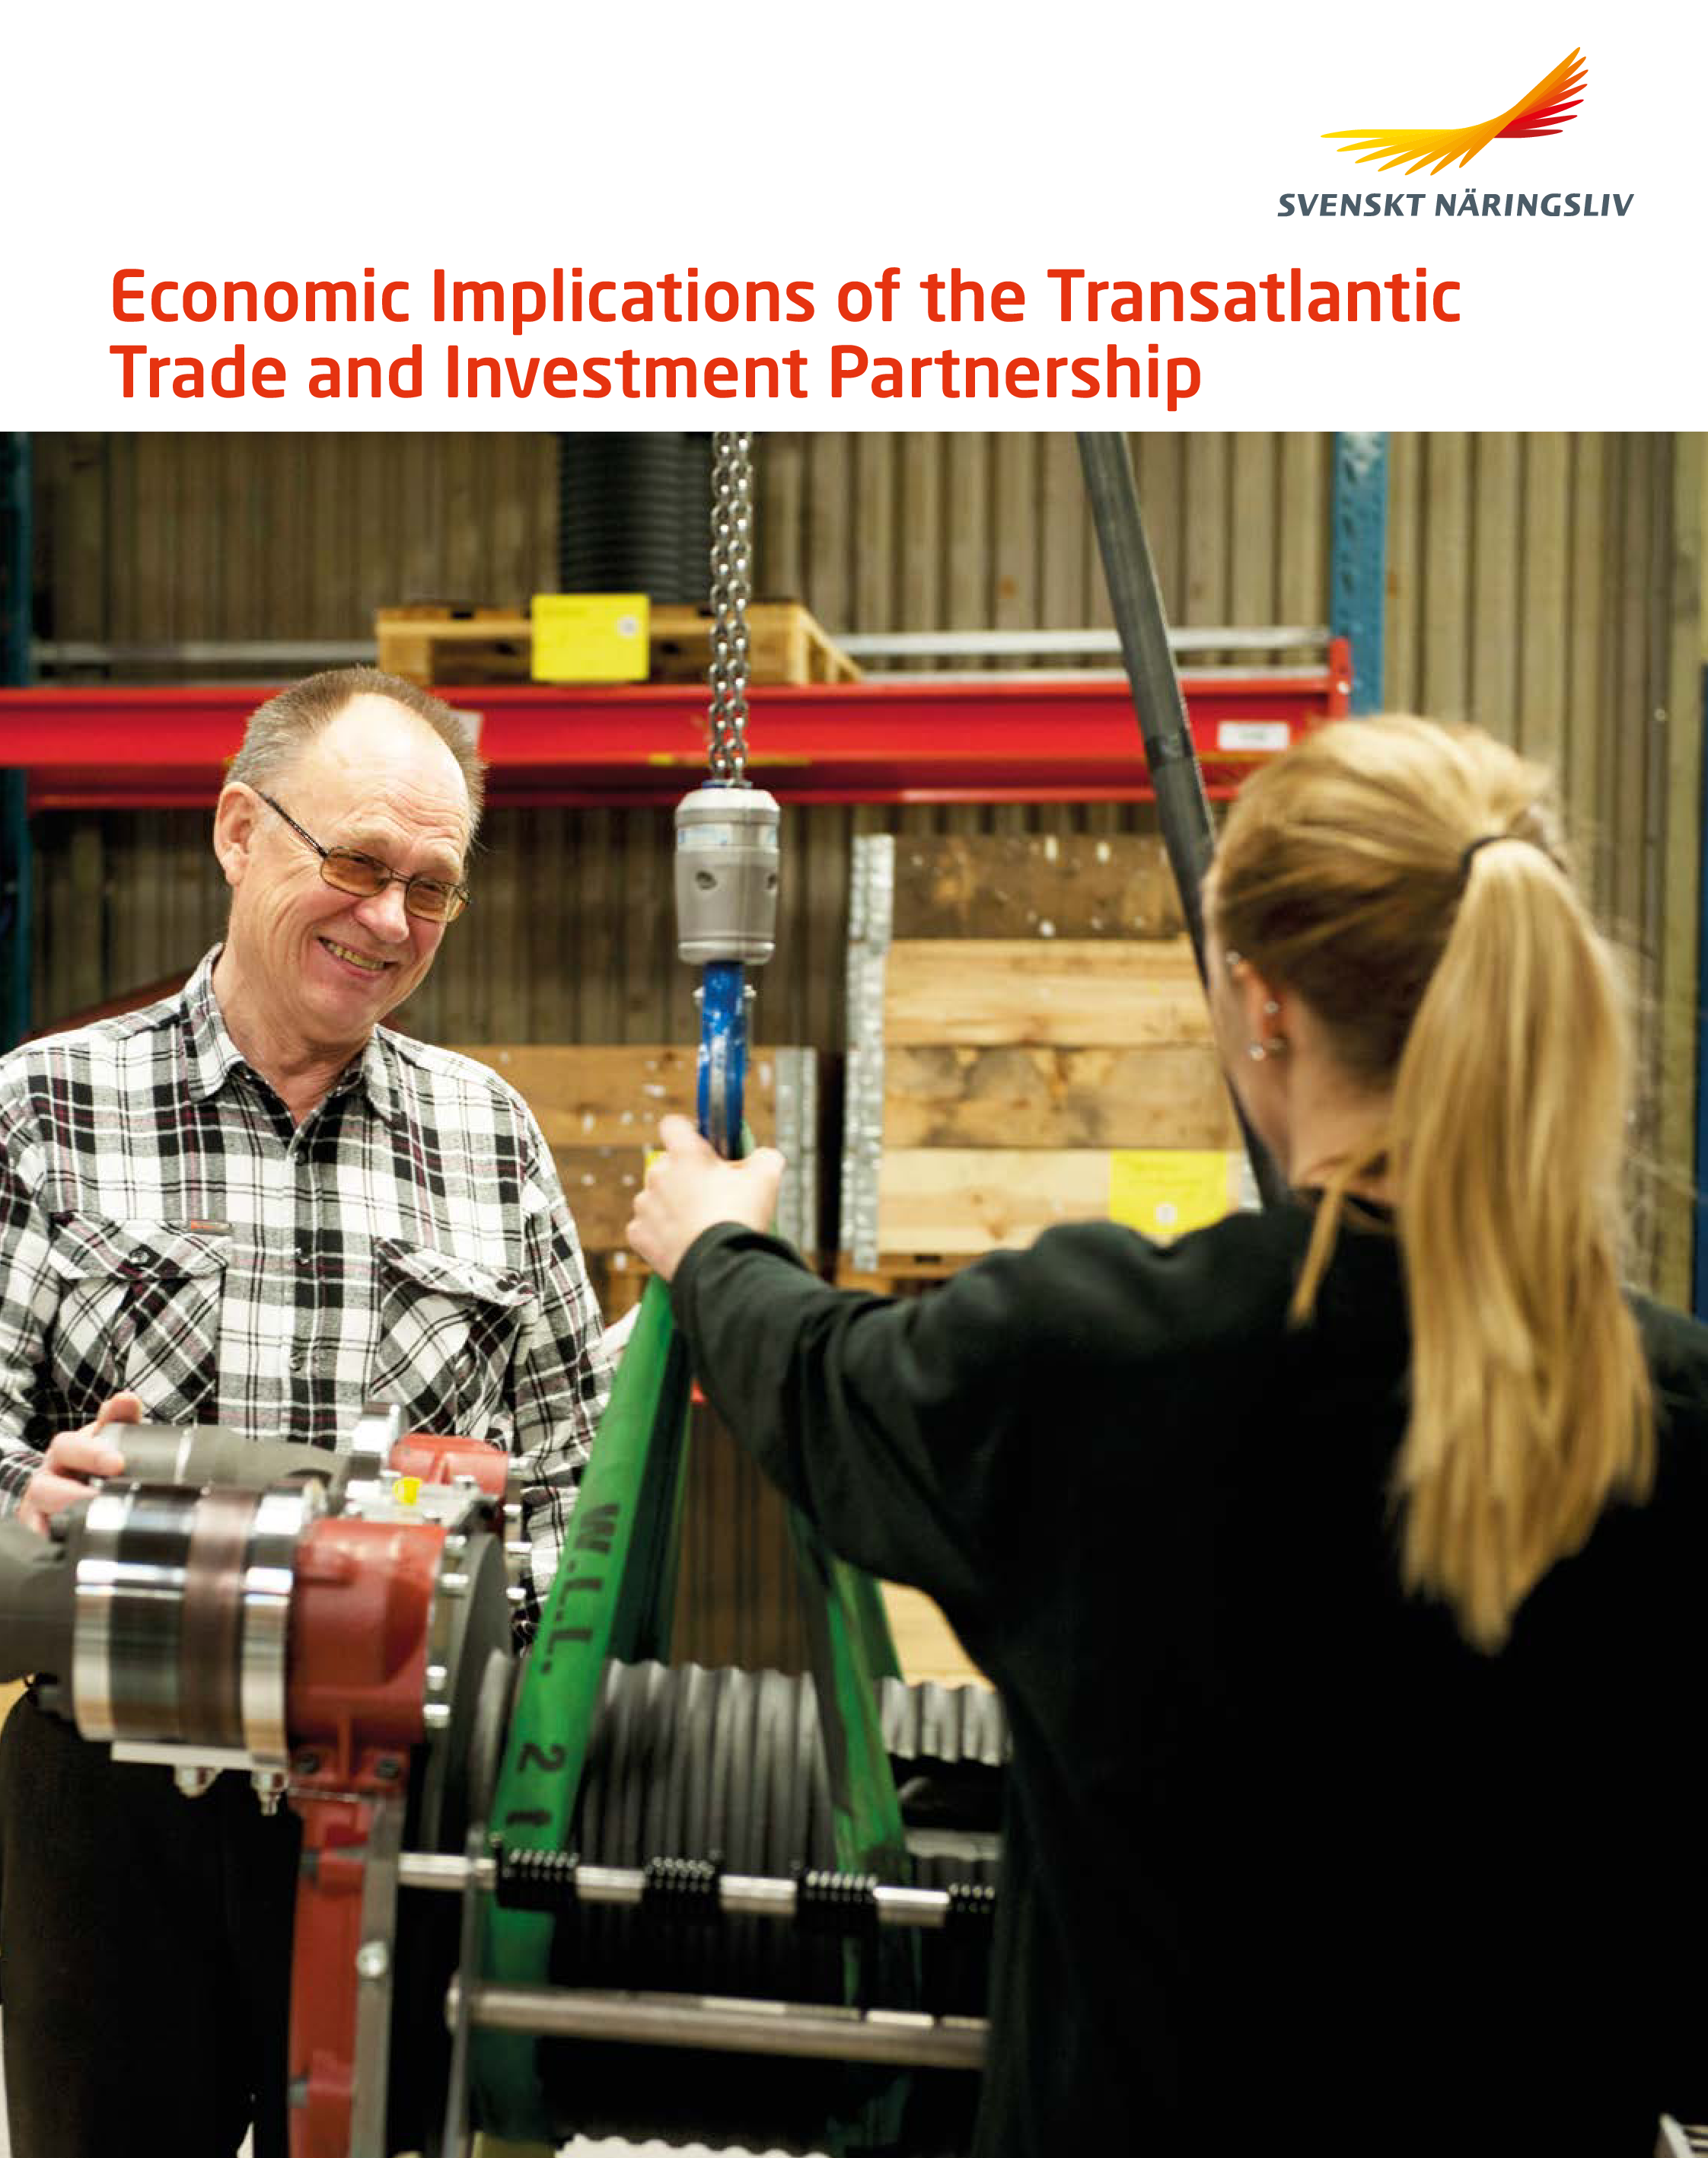 Economic Implications of the Transatlantic Trade and Investment Partnership